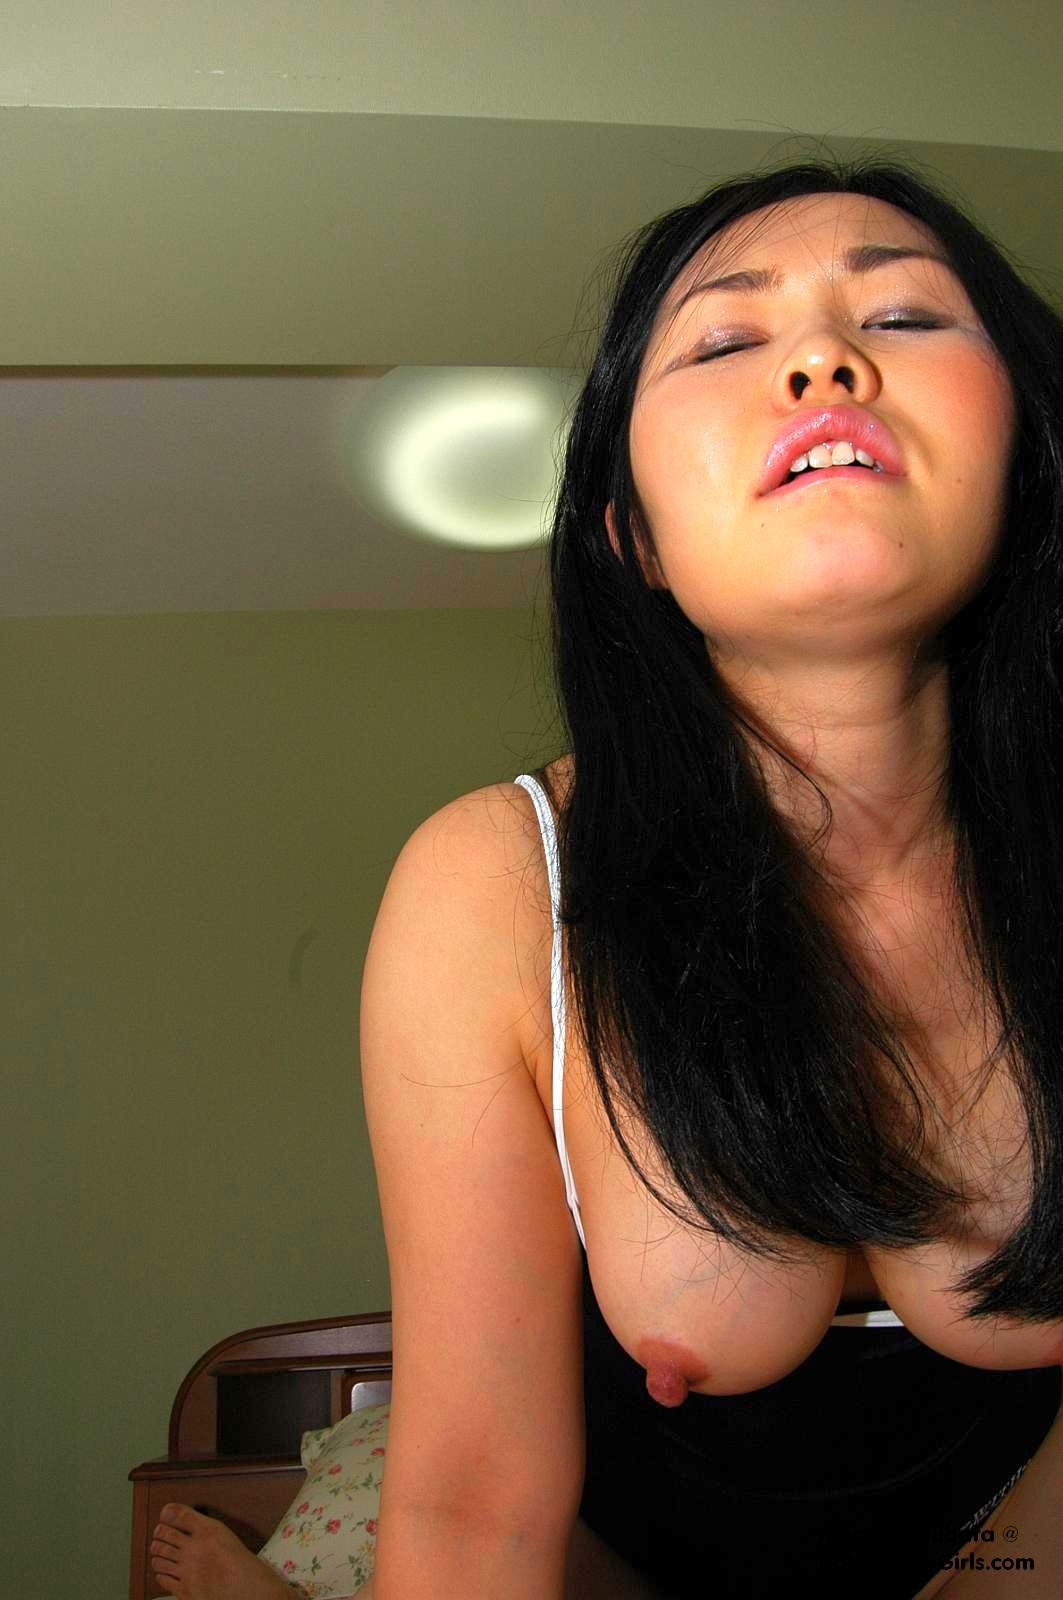 Hot Japanese Teen Megumi Shibata Shows Off Her Big Oppai and Sexy Nipples